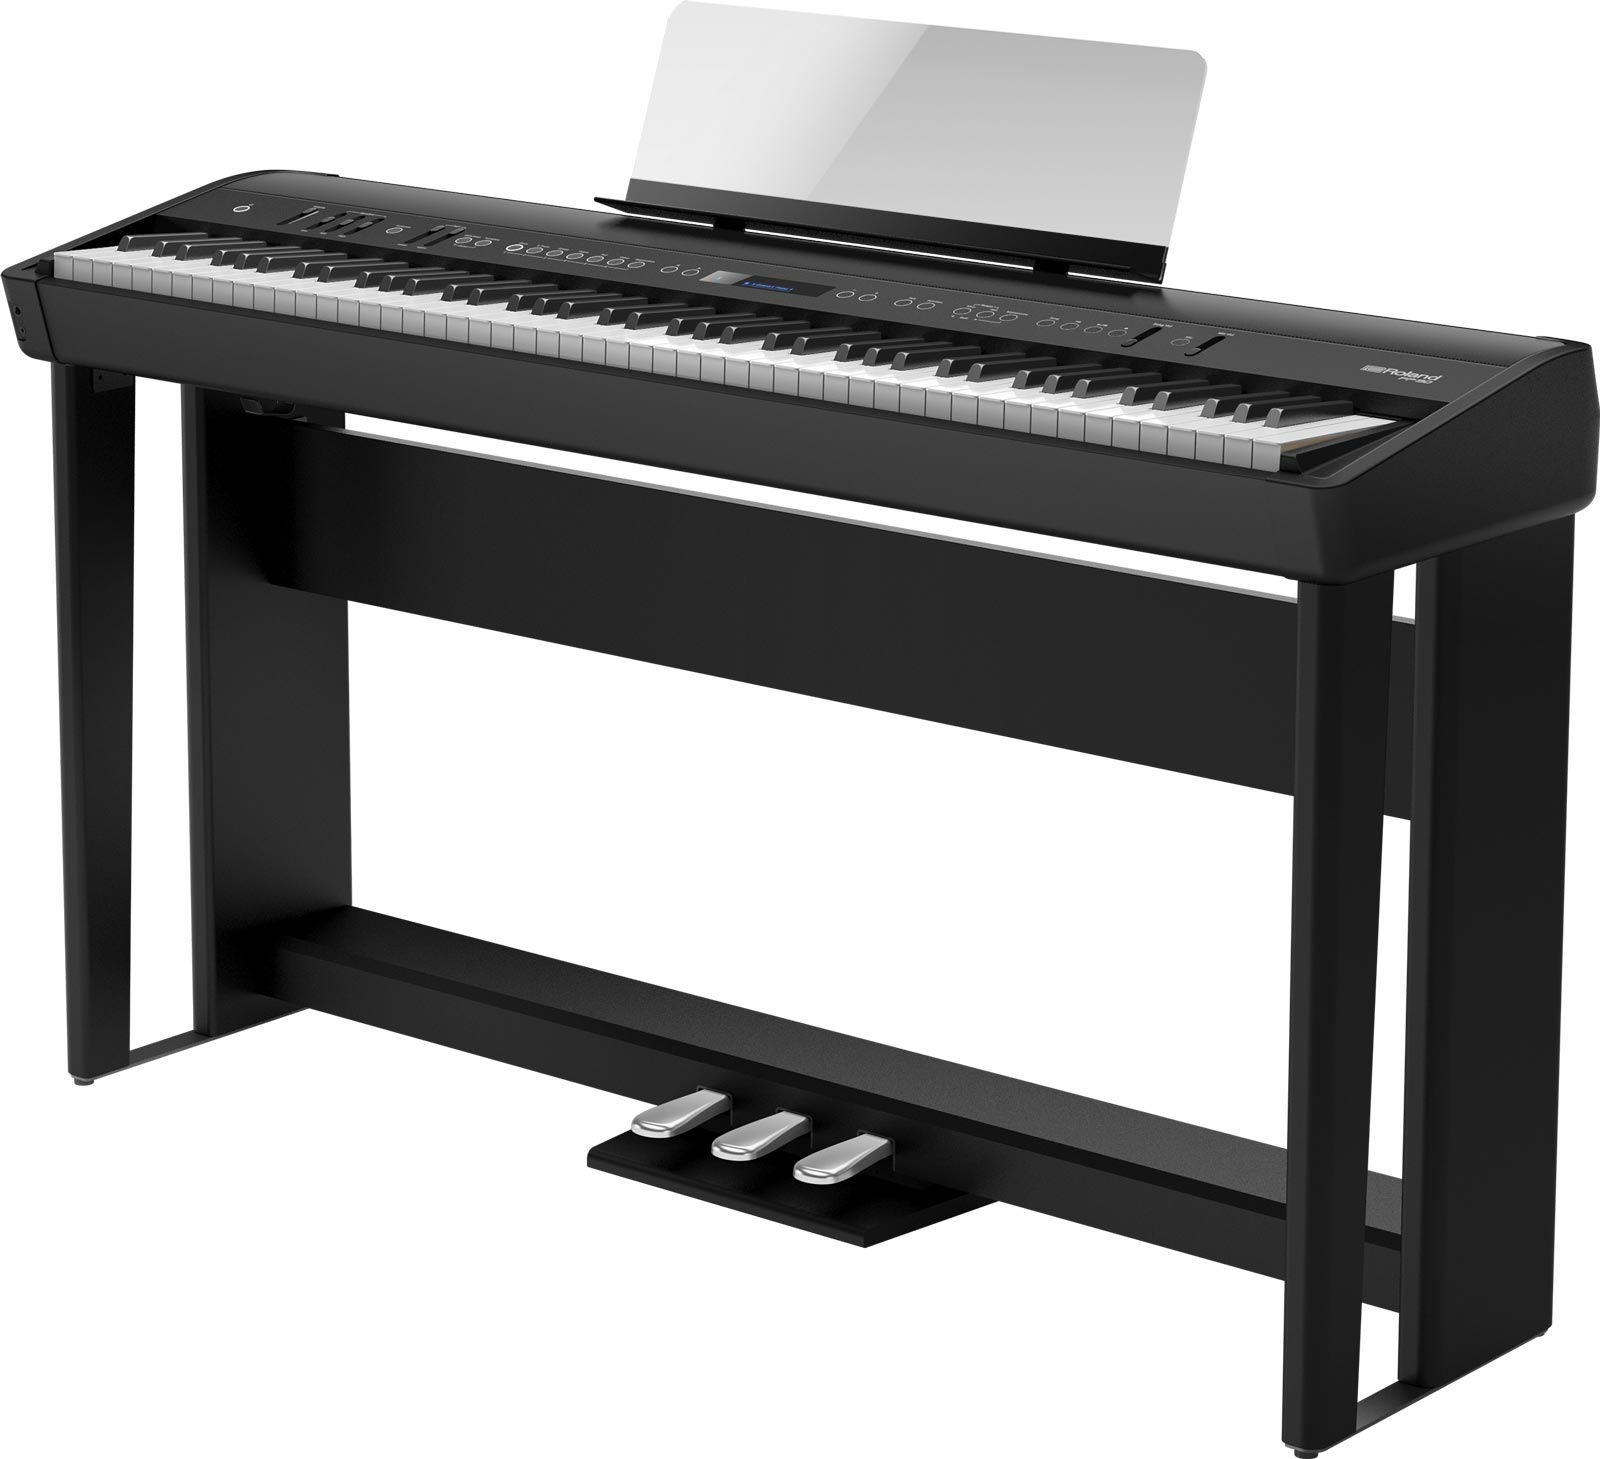 Roland Fp Series Digital Pianos Overview Fp 10 Fp 30 Fp 60 Fp 90